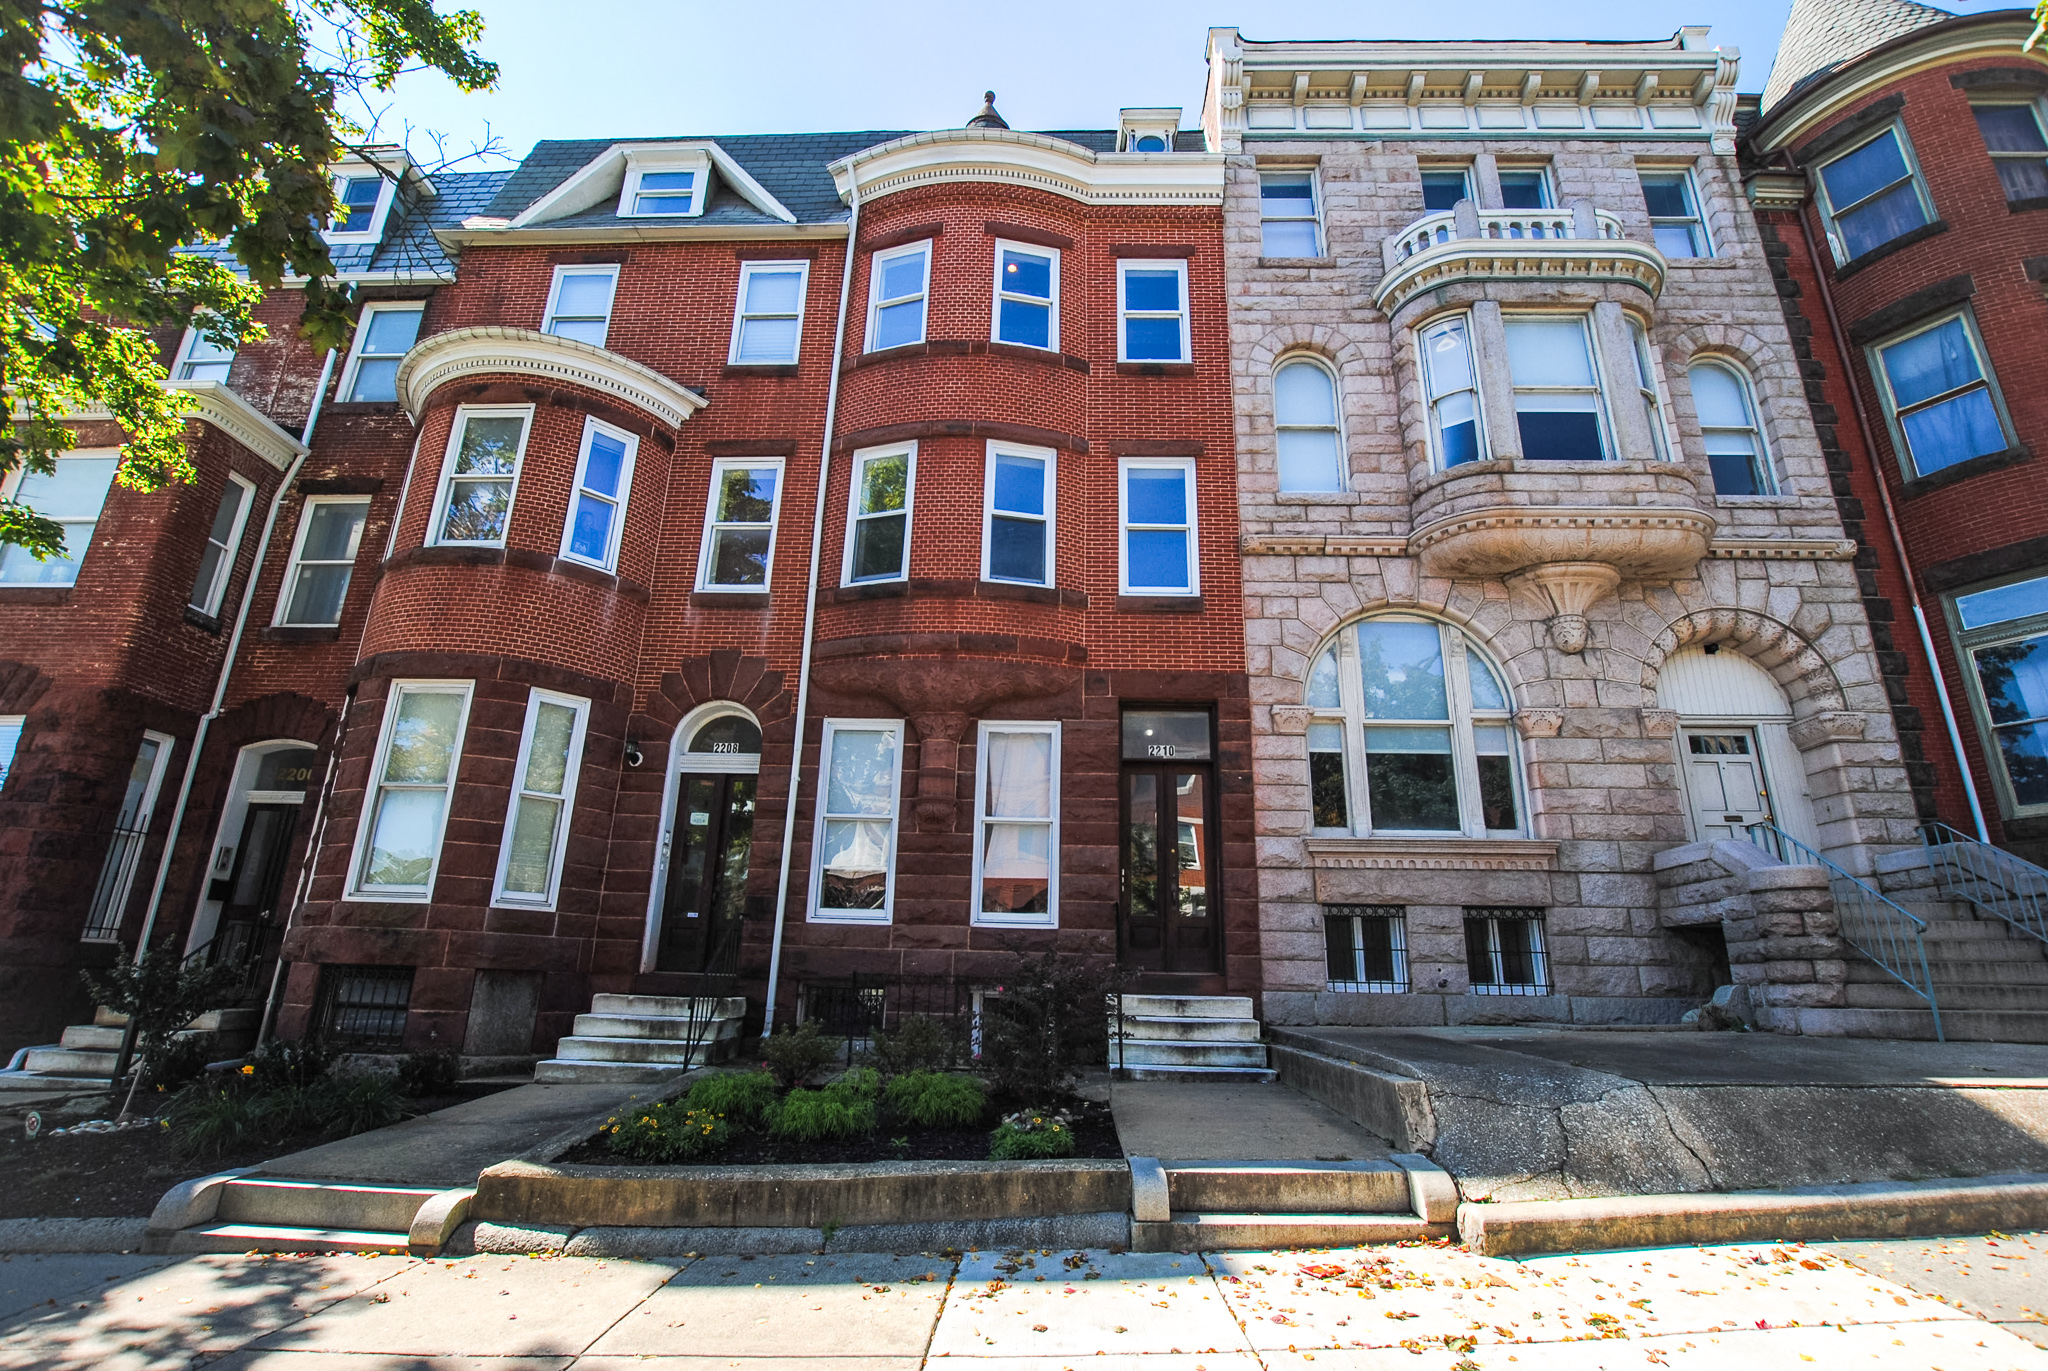 2208 Eutaw Place: 3 Apartments in Reservoir Hill / Gut Rehabbed 2008 / Fully Leased